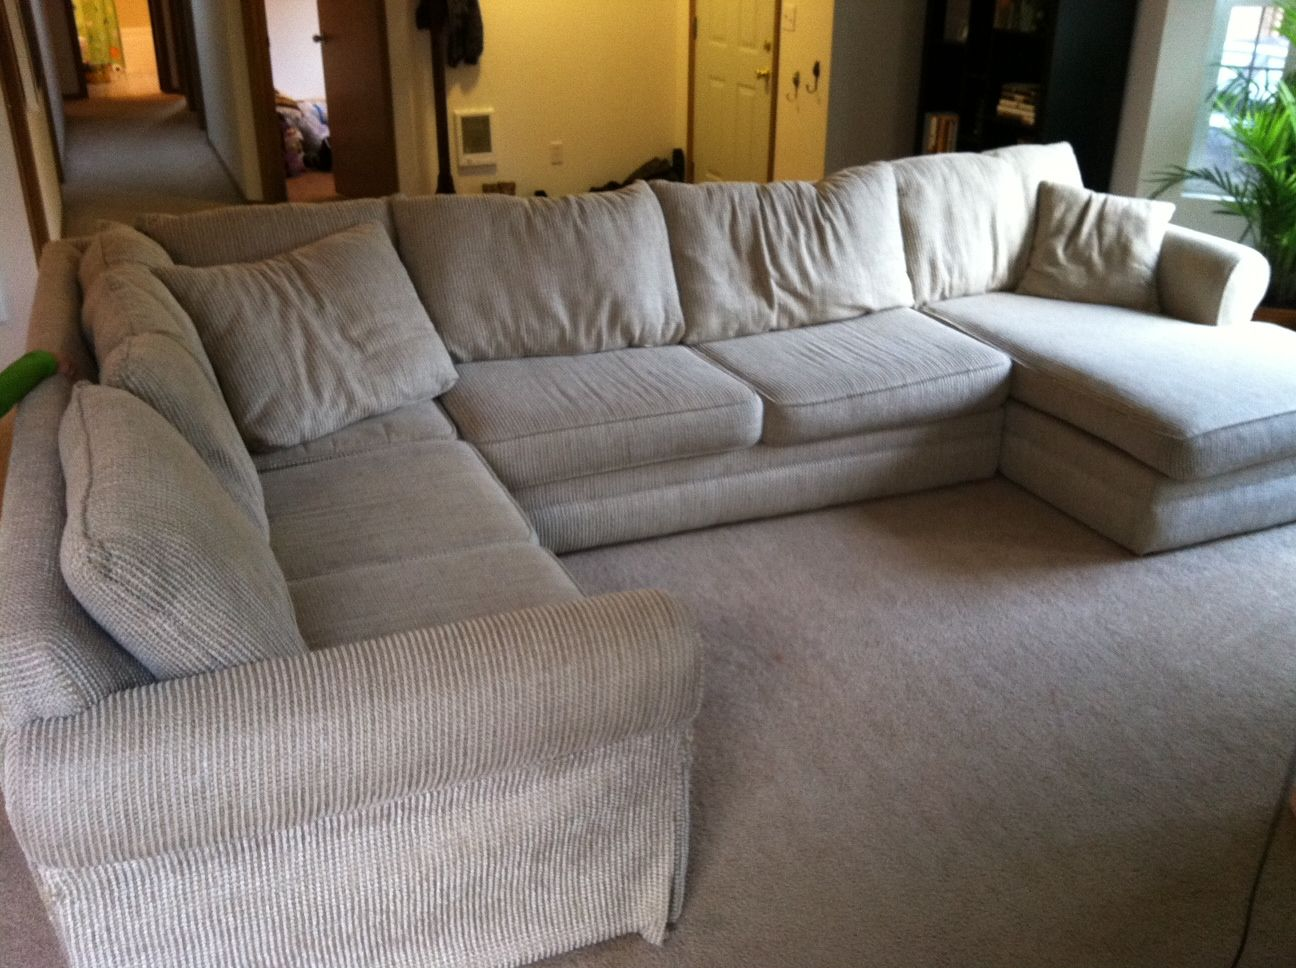 comfy couch home rh pinterest com